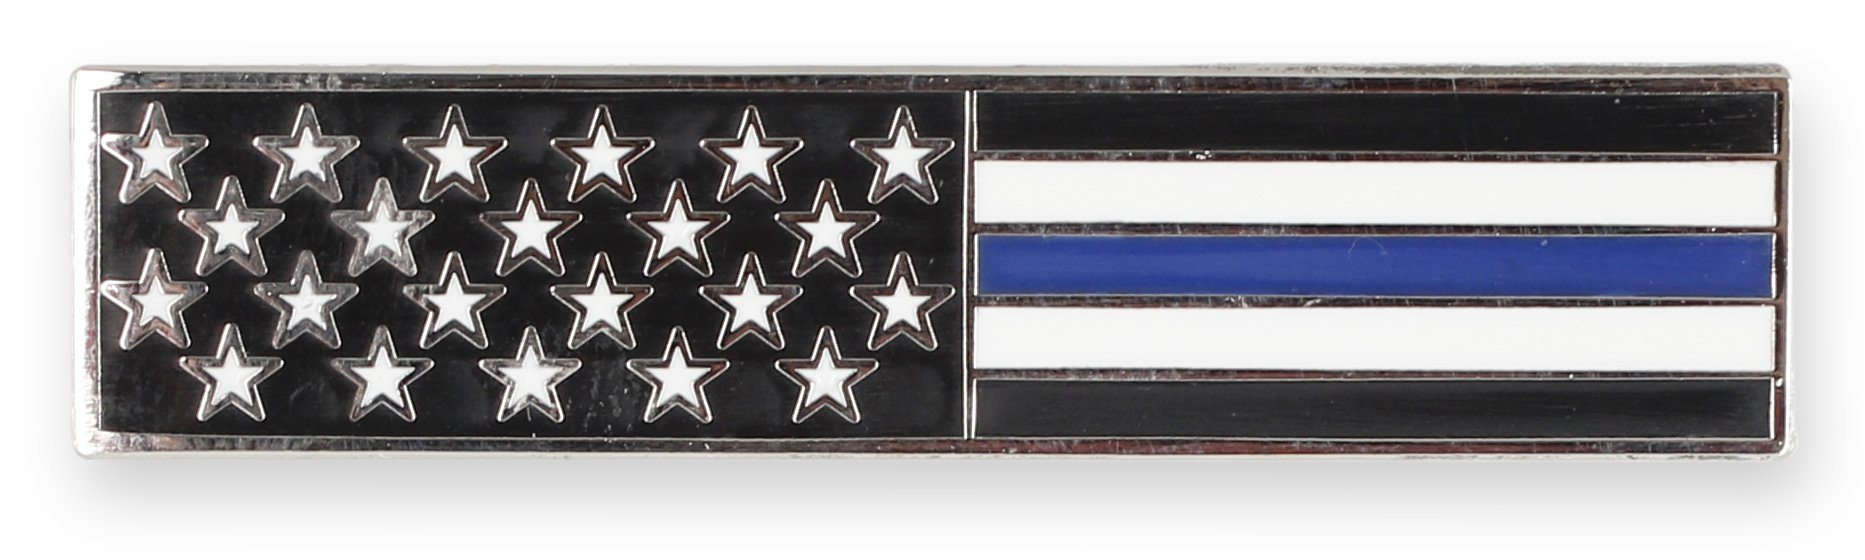 Thin Blue Line American Flag Stars Stripes Uniform Bar Pin